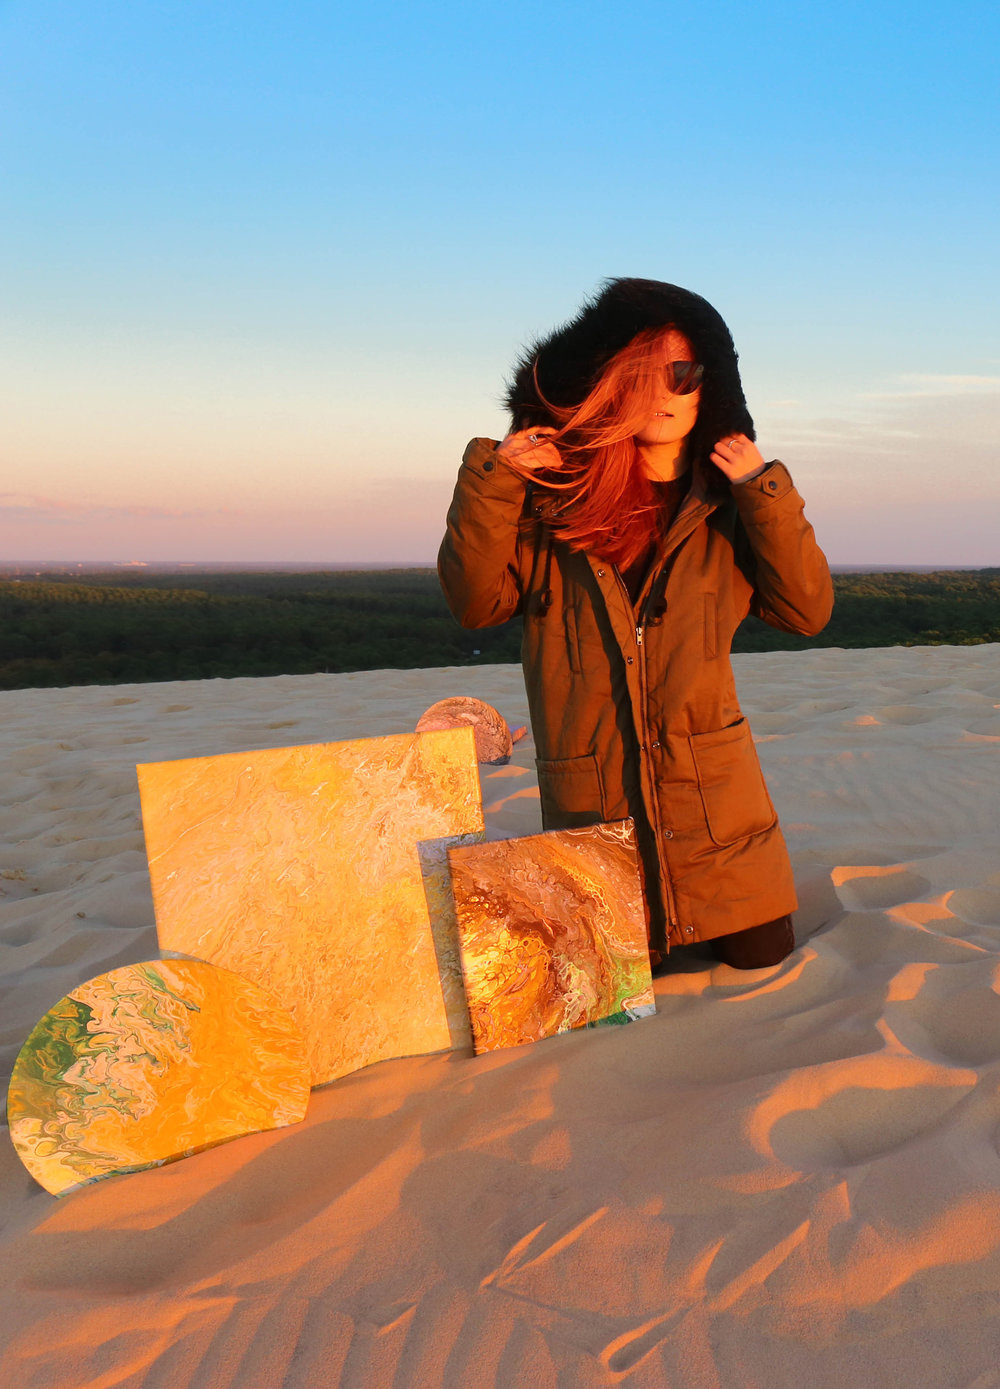 sunset at Dune de pyla, pouring art by twopartsofone